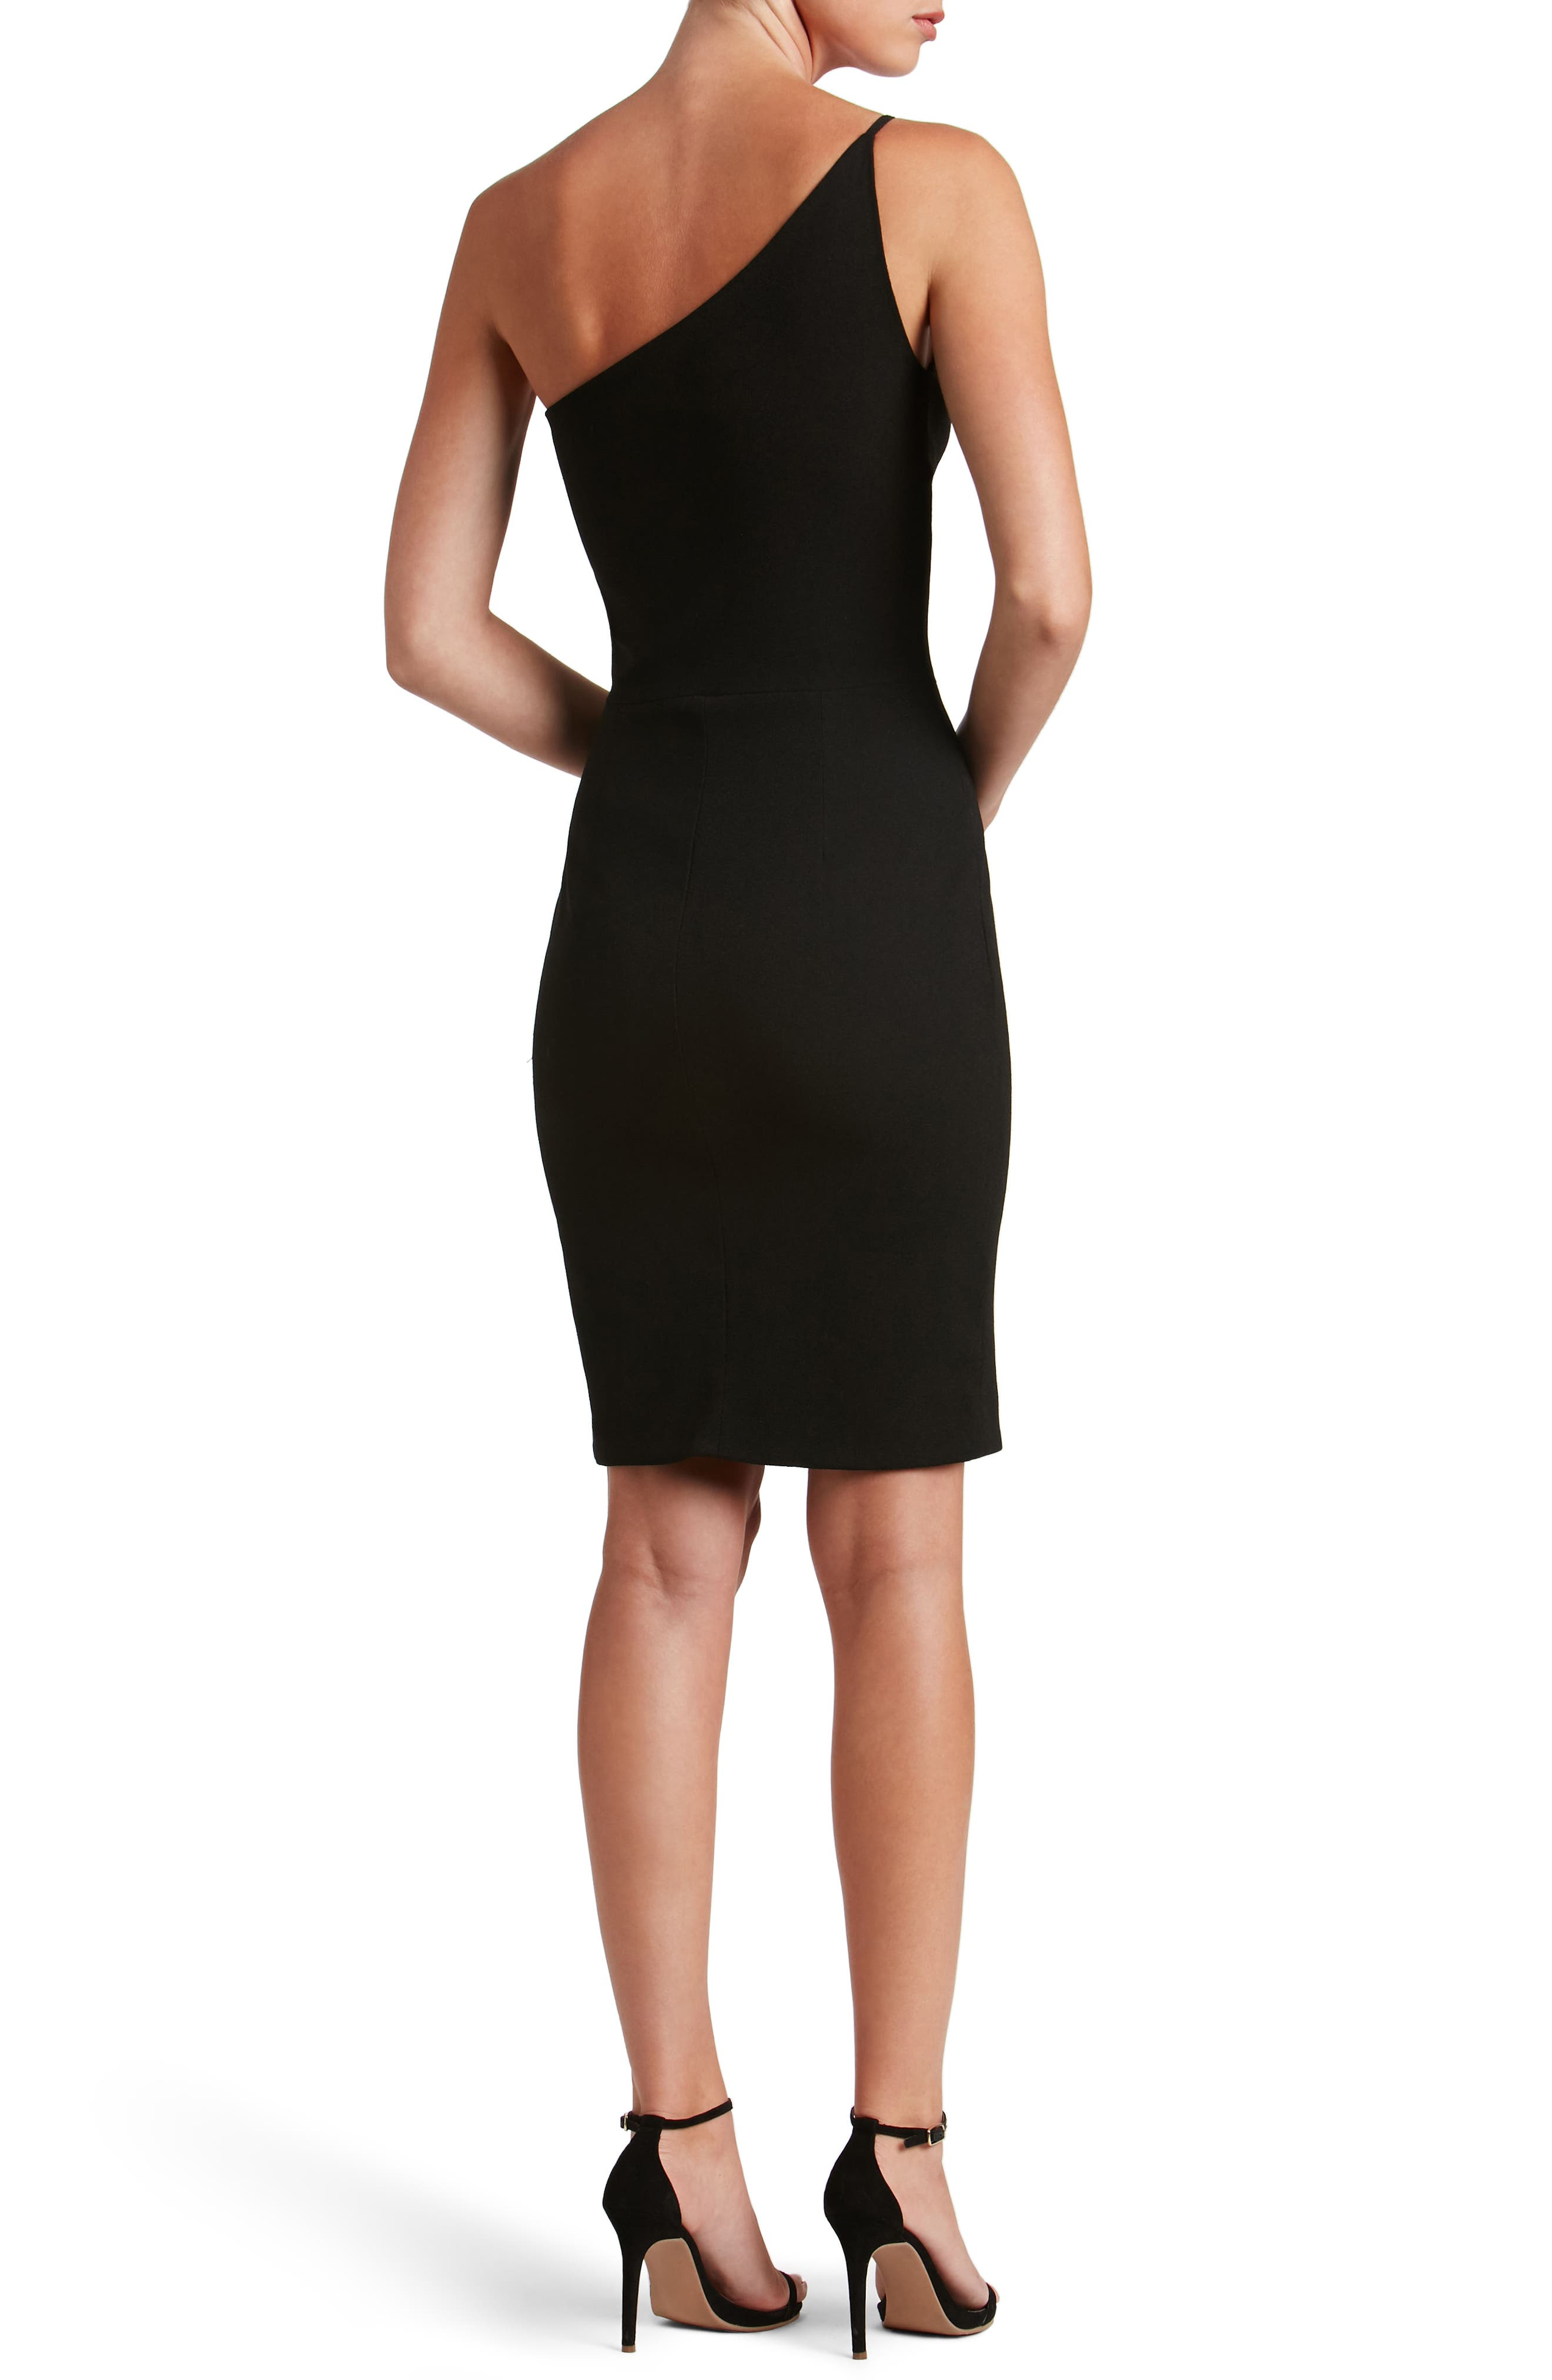 Jennifer One-Shoulder Body-Con Dress,                             Alternate thumbnail 2, color,                             001